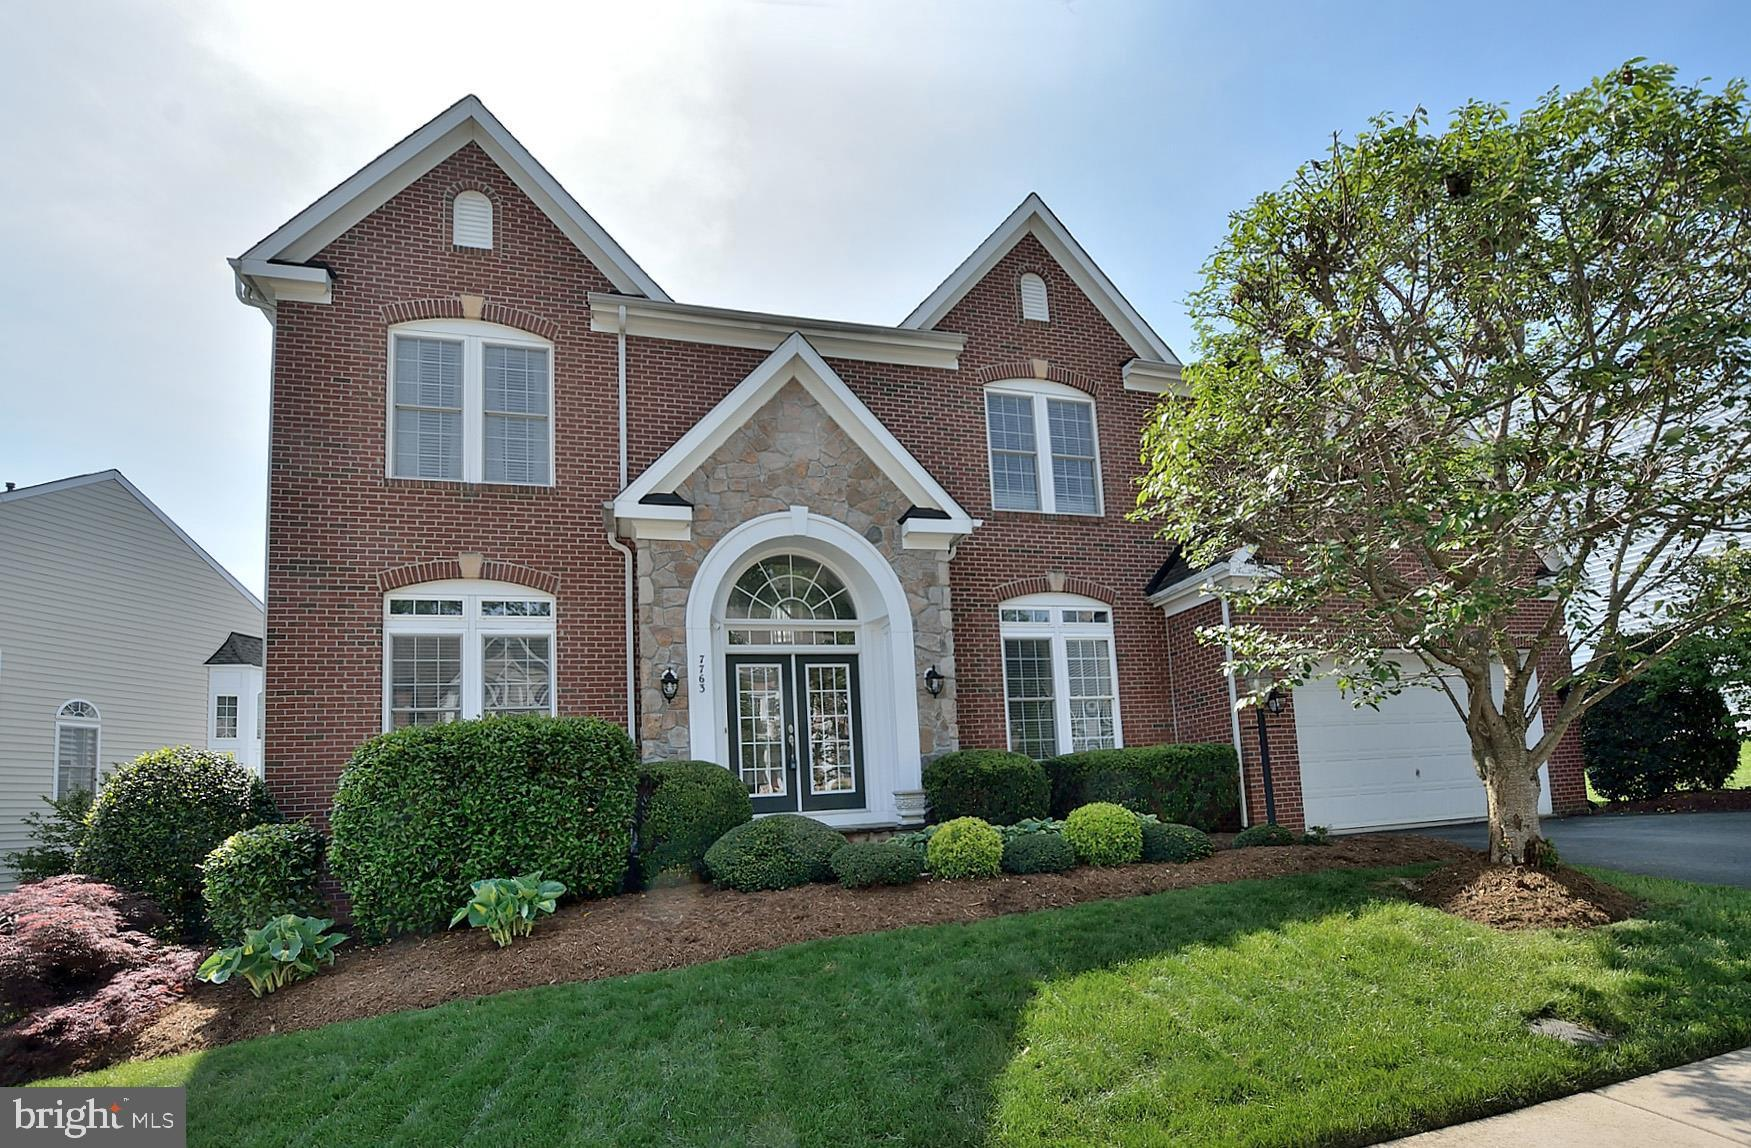 7763 CAMP DAVID DRIVE, SPRINGFIELD, VA 22153